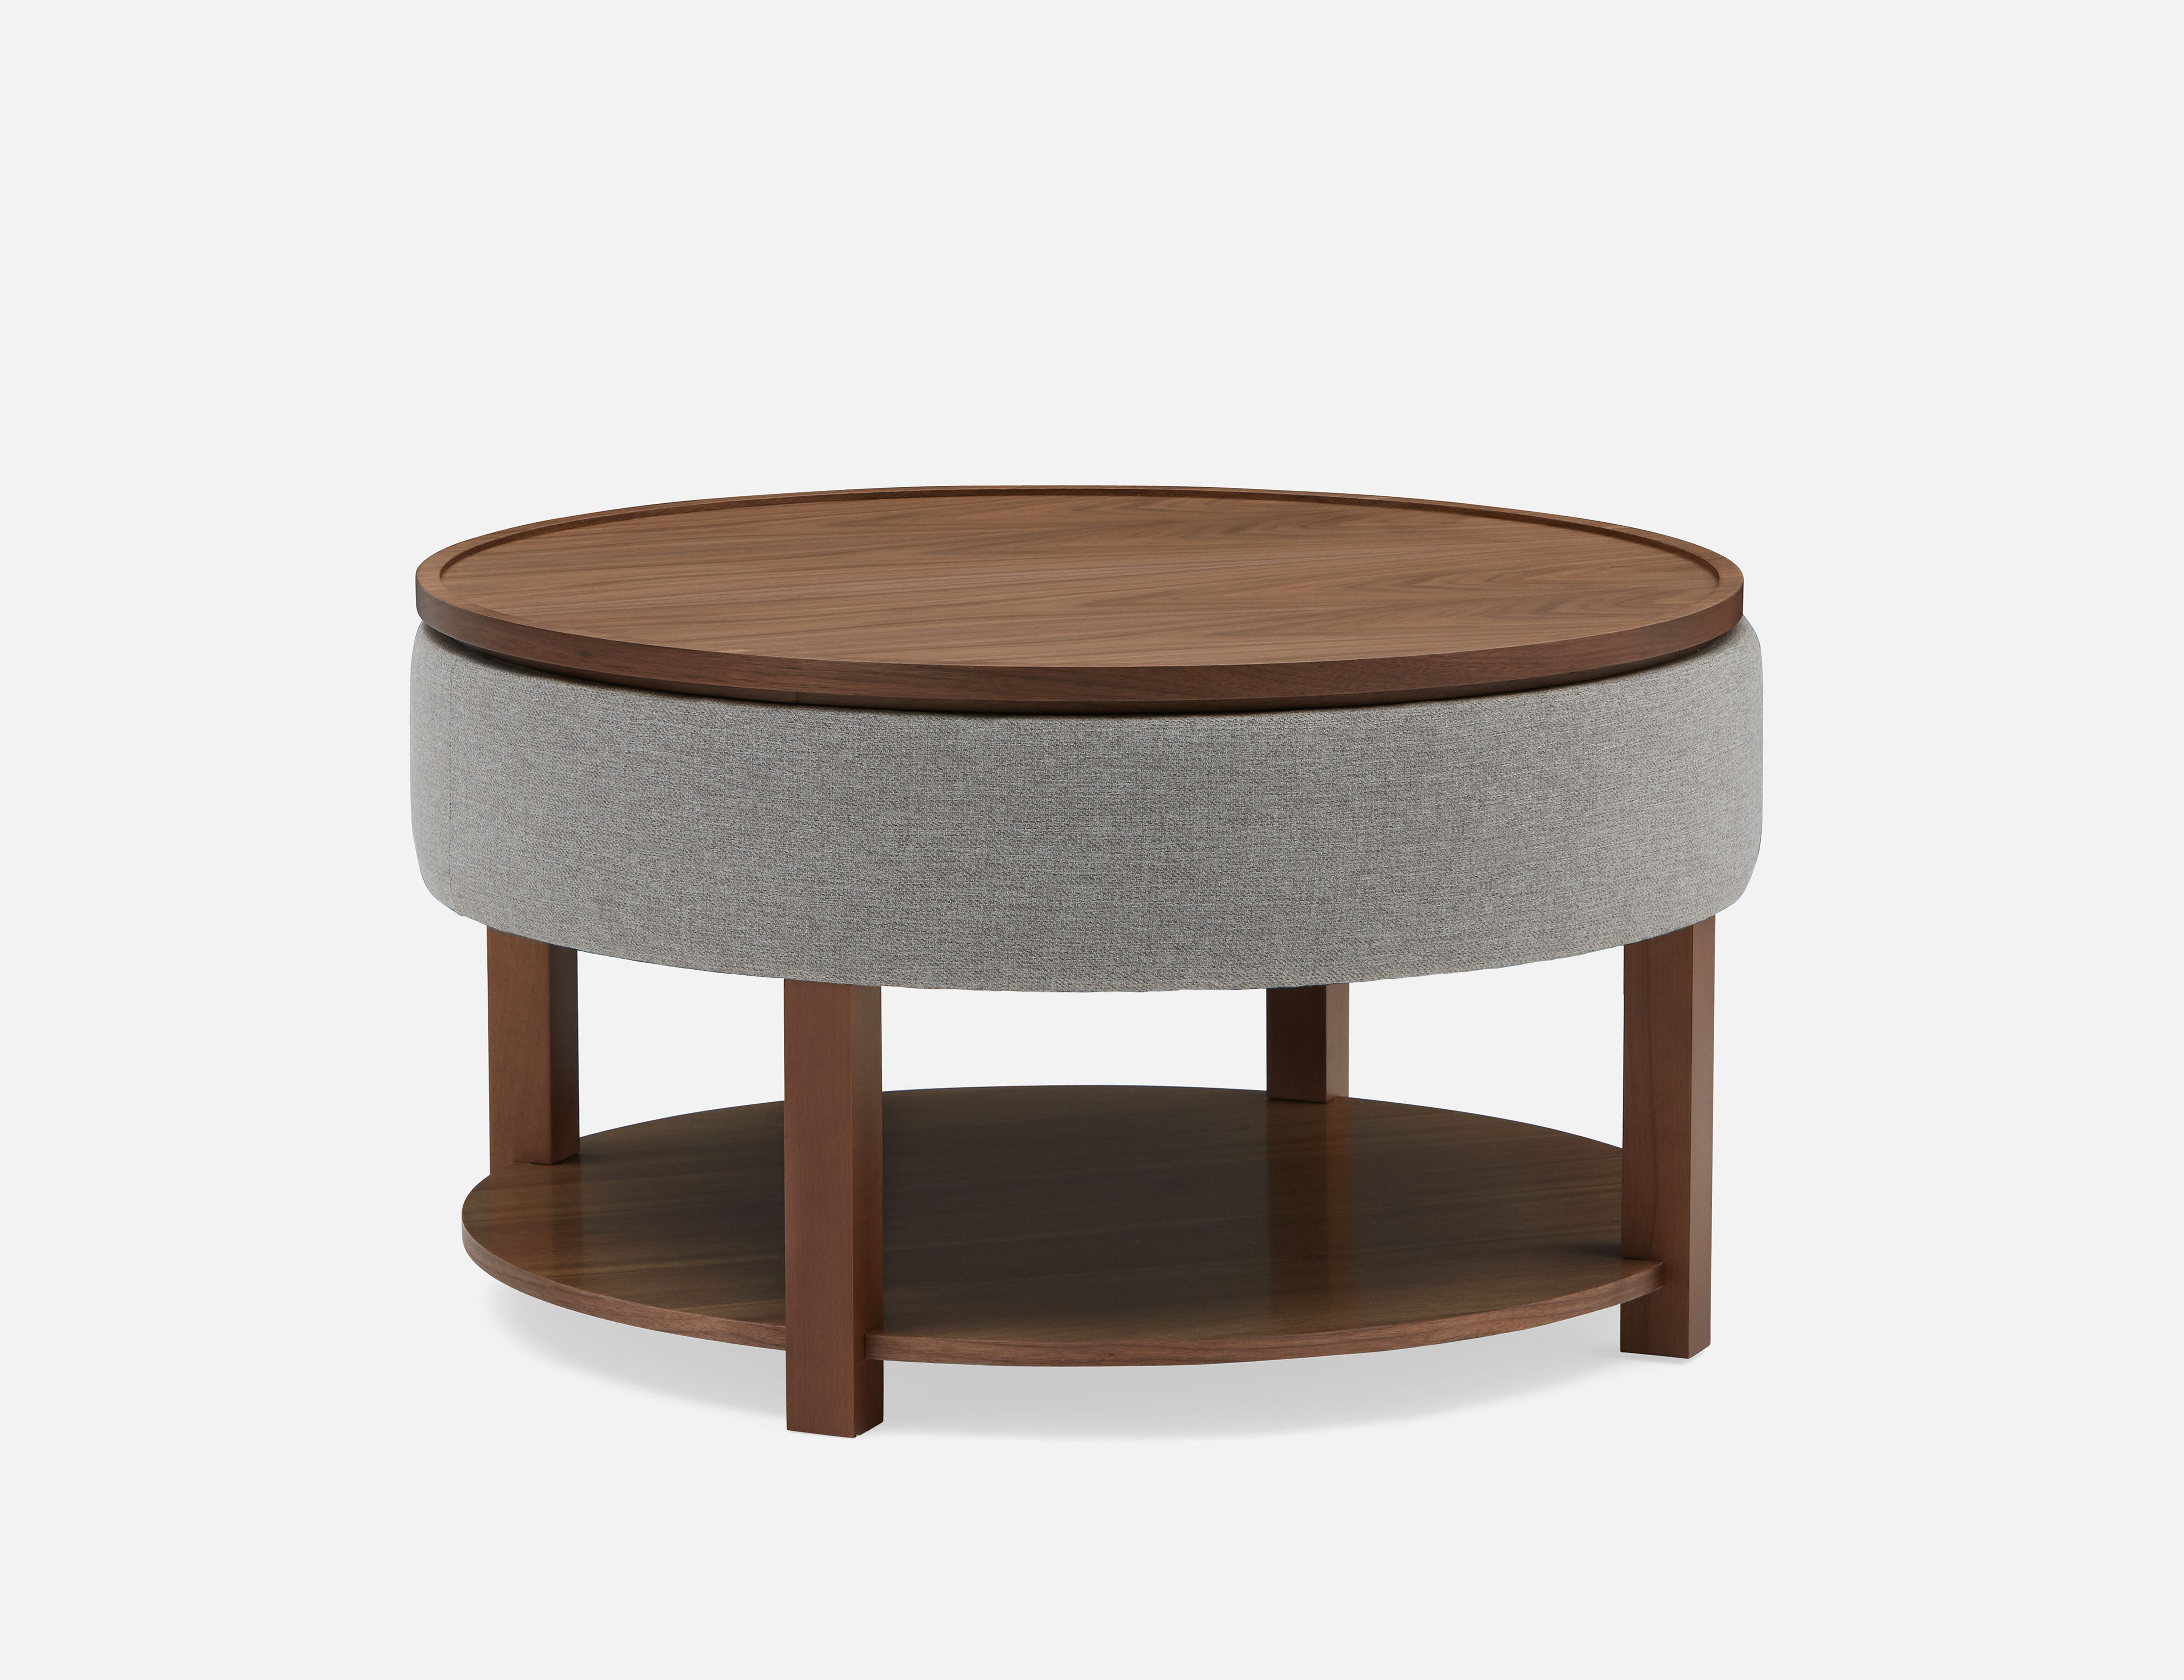 Pin By Mansi Singh On Beauty Products Coffee Table With Storage Coffee Table Coffee Table Wood [ 3835 x 4985 Pixel ]